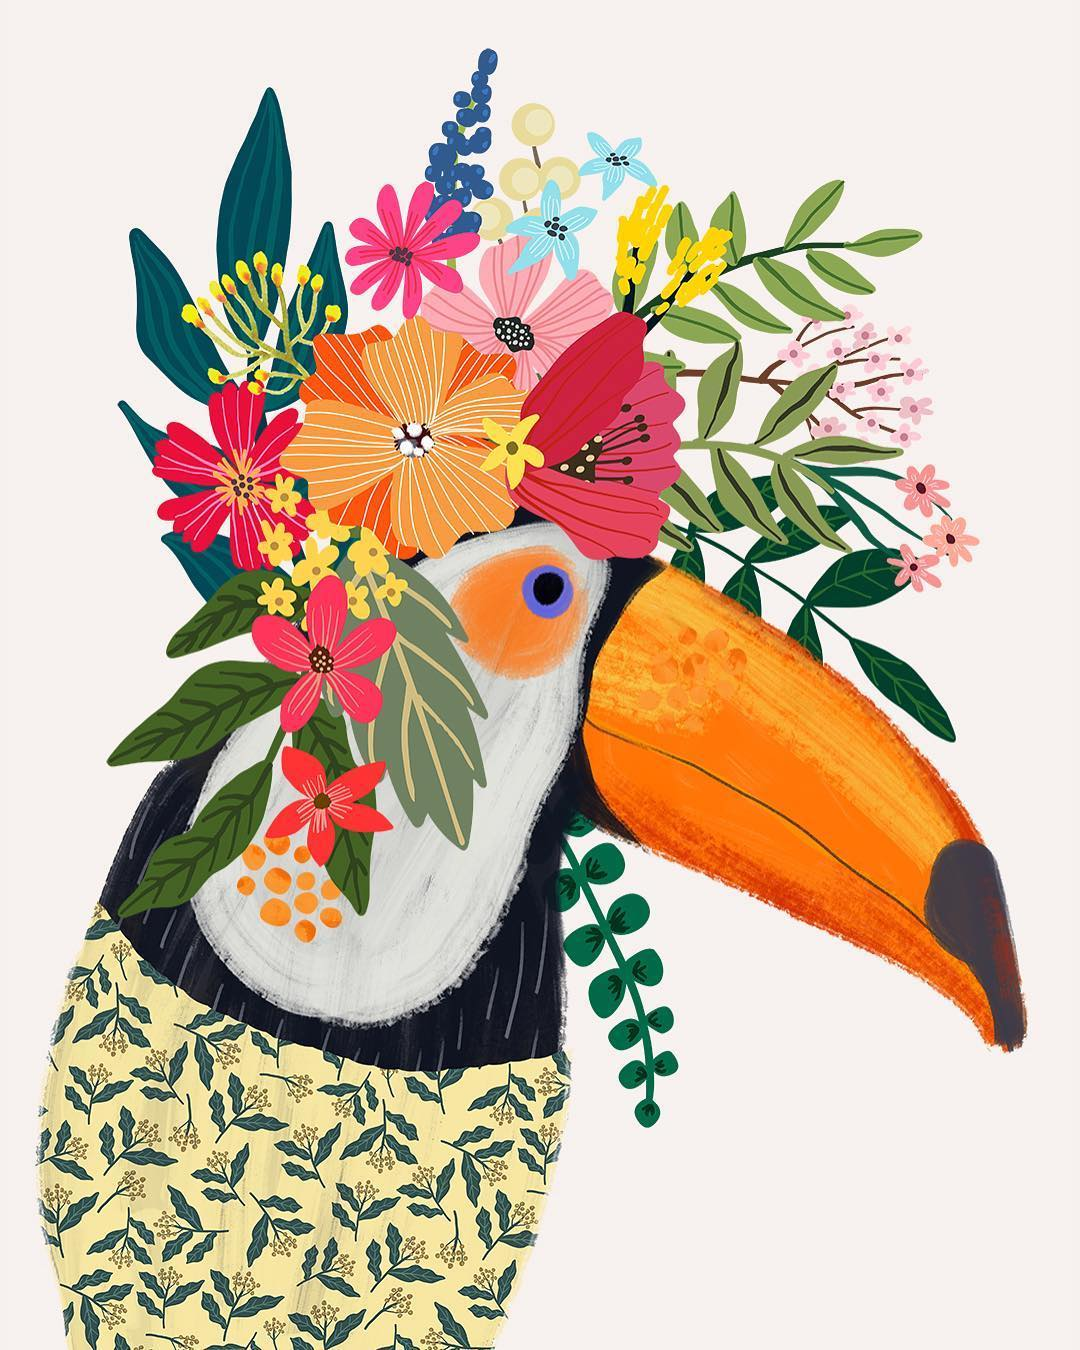 Animal wearing flower crowns illustrated by Mia Charo